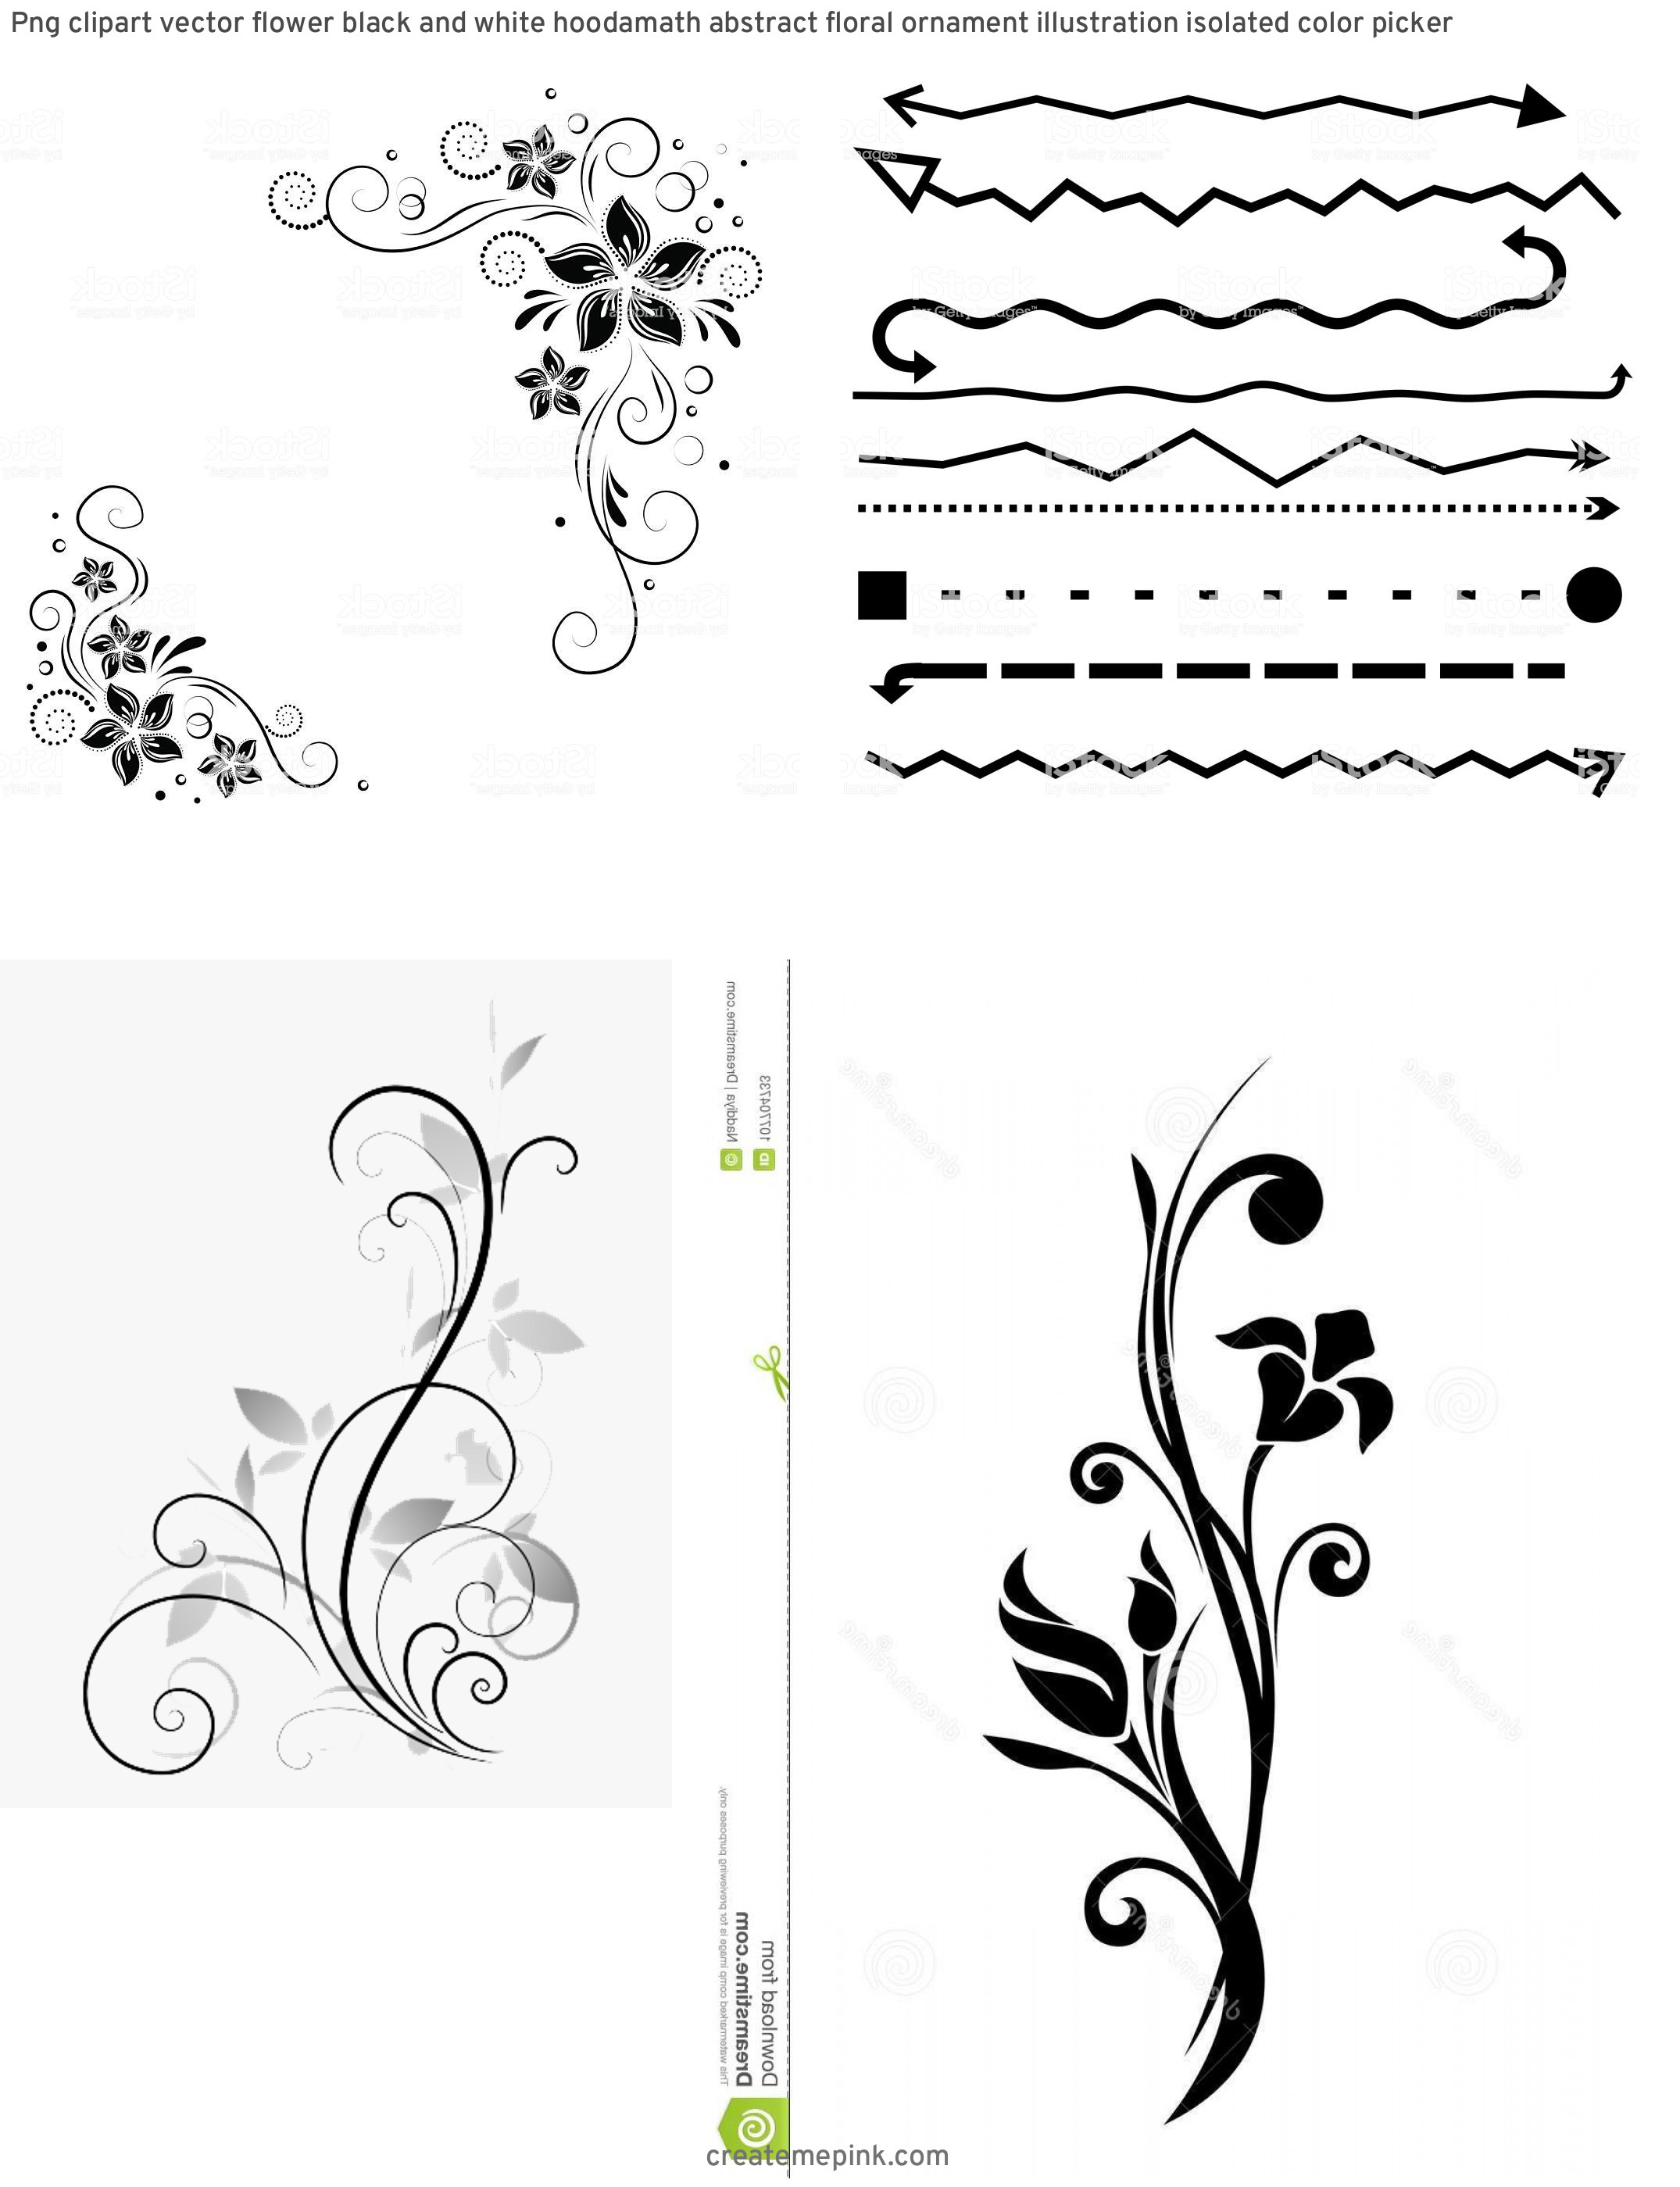 White Clip Art Vector Design: Png Clipart Vector Flower Black And White Hoodamath Abstract Floral Ornament Illustration Isolated Color Picker